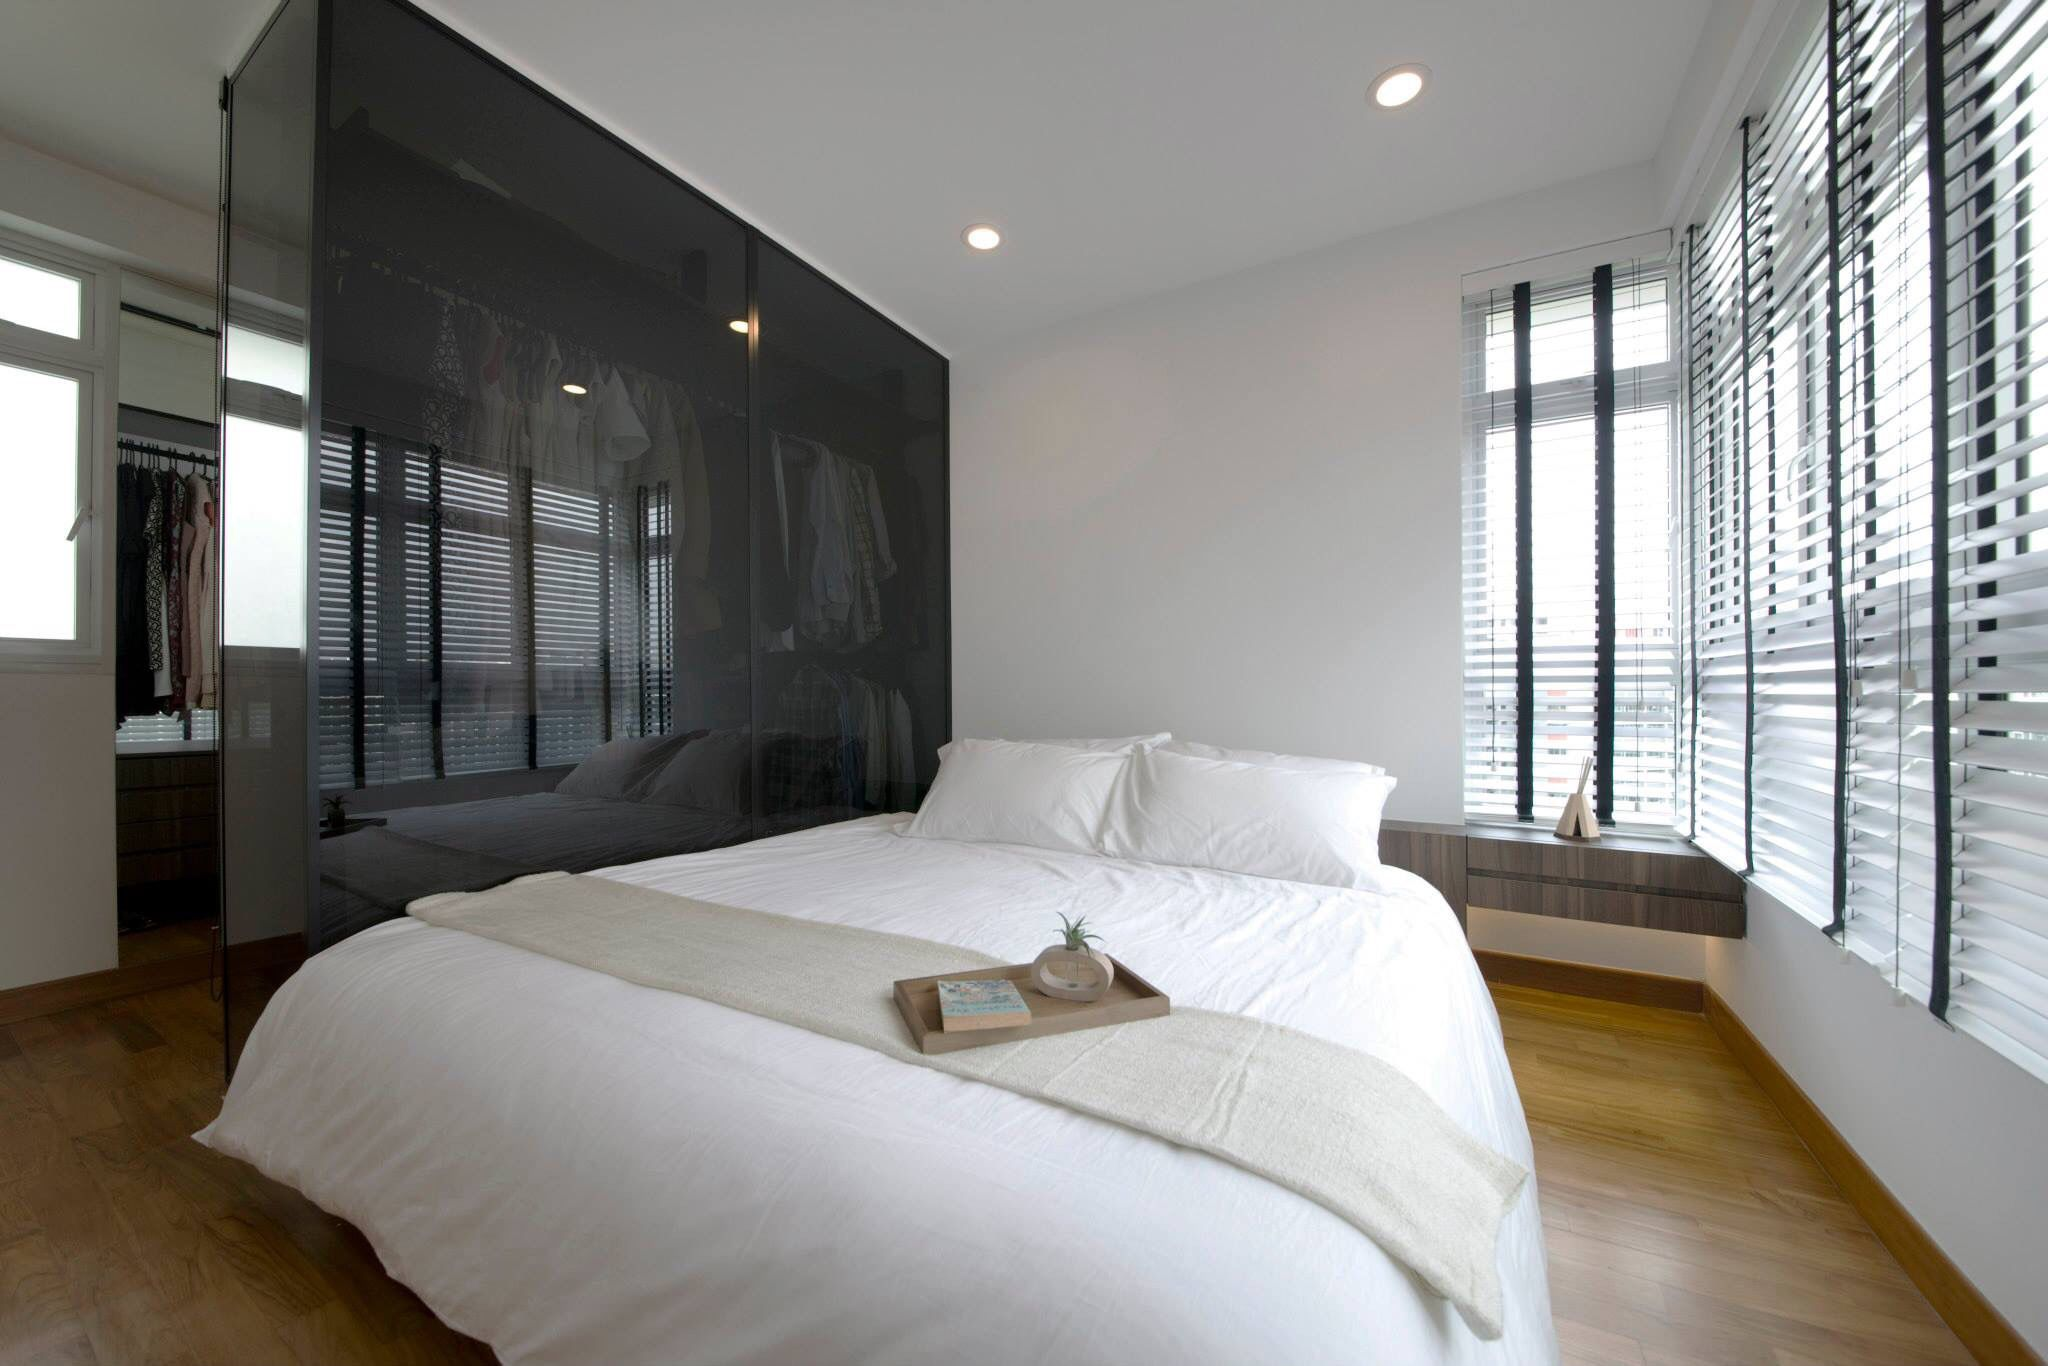 Master bedroom view with walk in wardrobe for the roof for Home design ideas singapore